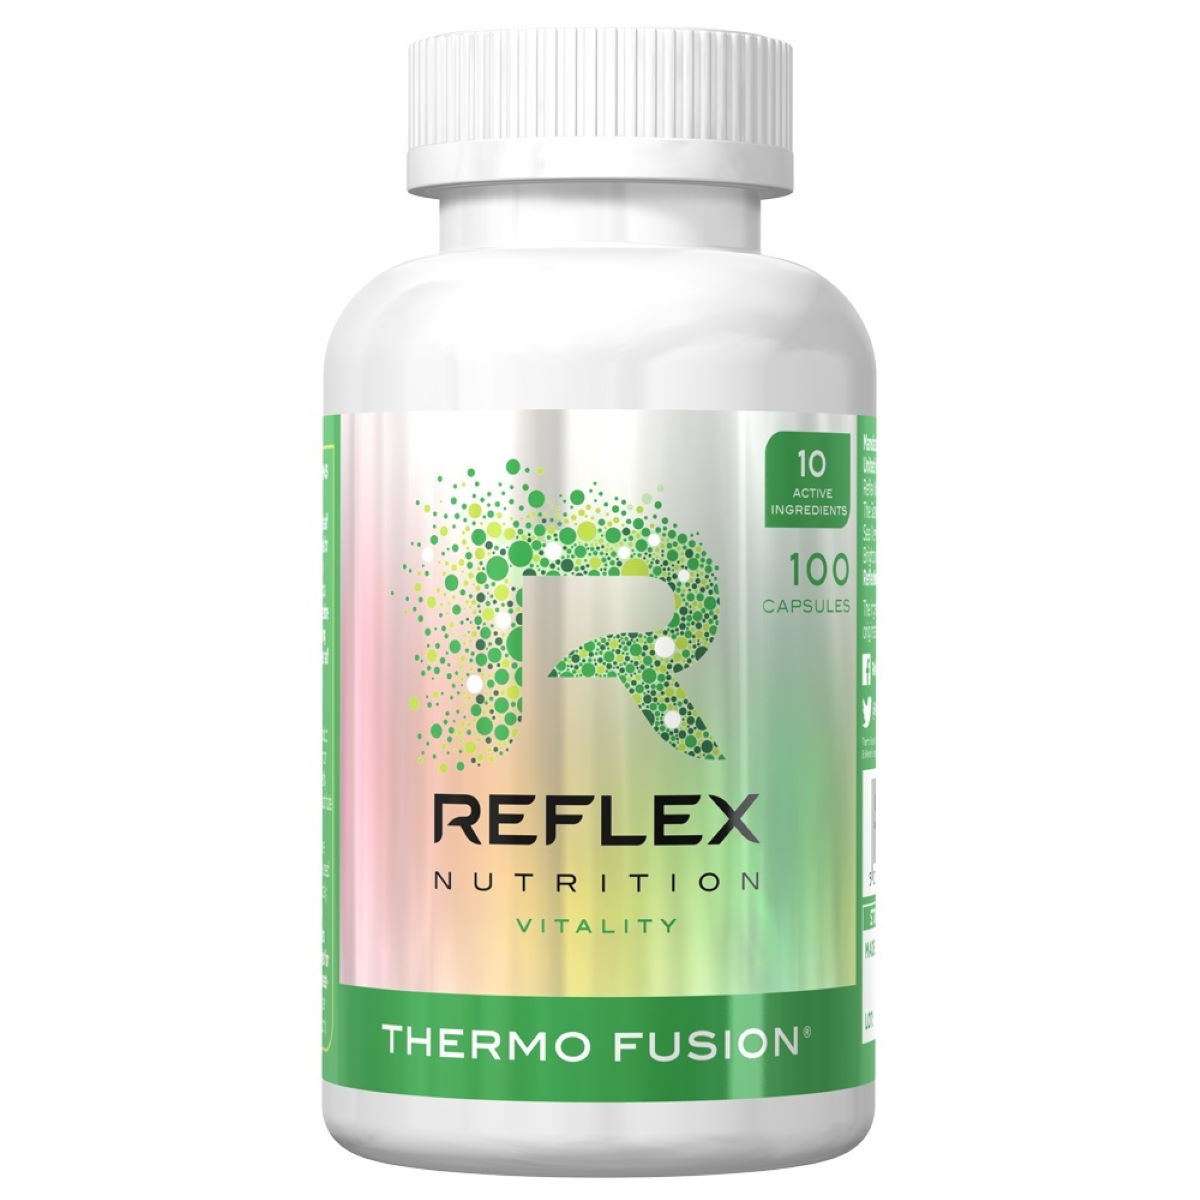 Reflex Reflex Thermo Fusion® (100 Capsules)   Supplements